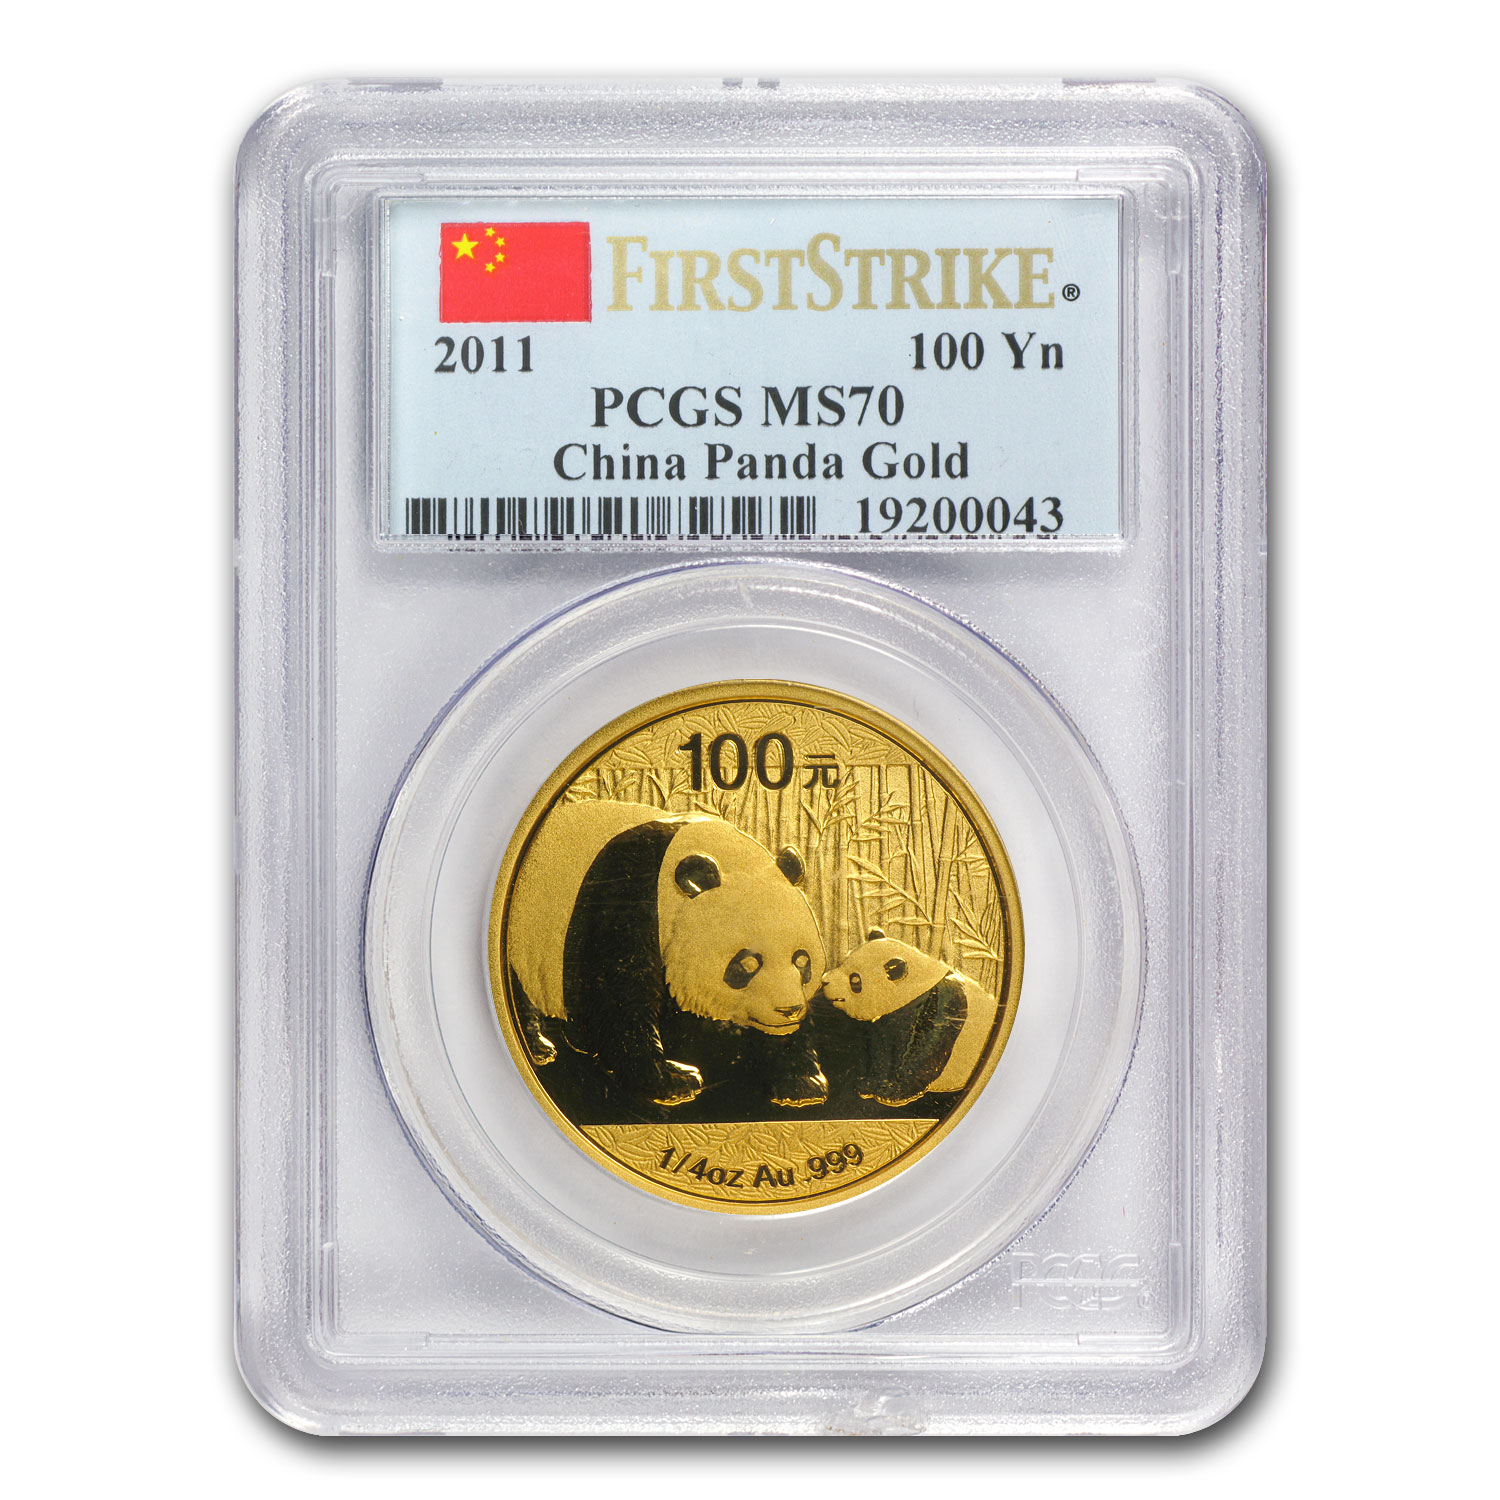 2011 1/4 oz Gold Chinese Panda MS-70 PCGS (First Strike)